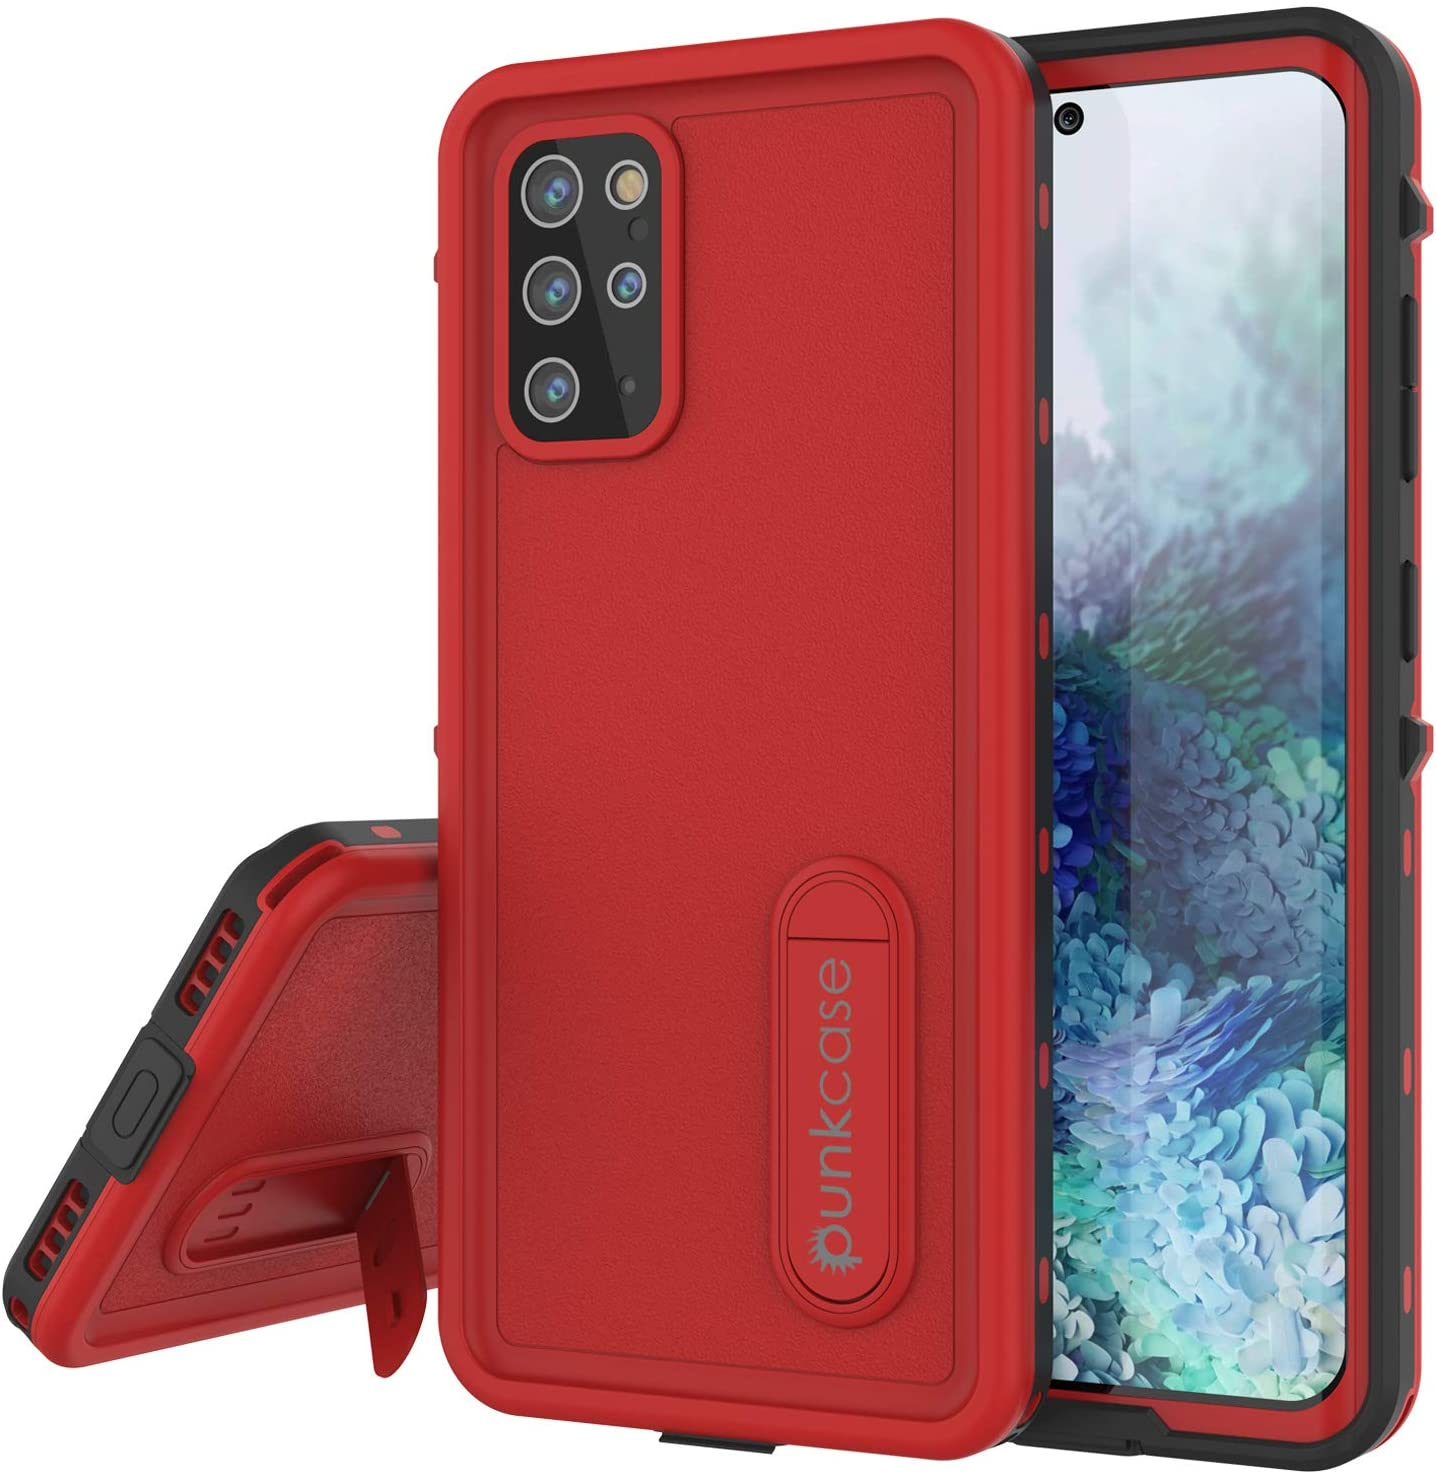 Galaxy S20+ Plus Waterproof Case, Punkcase [KickStud Series] Armor Cover [Red]